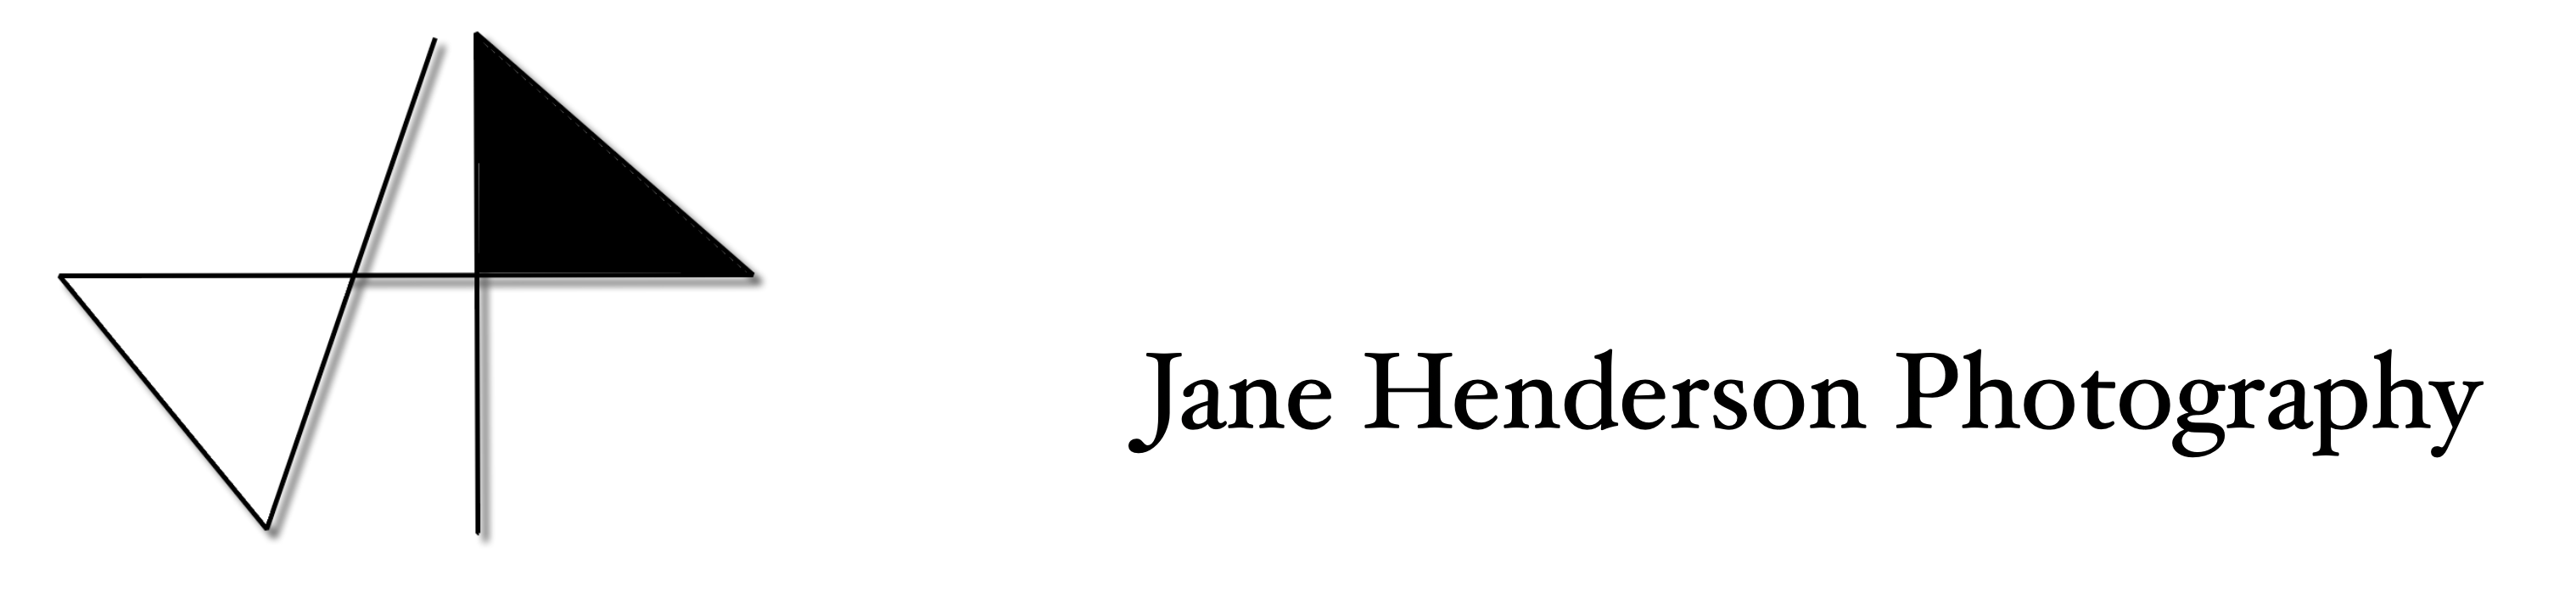 Jane Henderson Photography